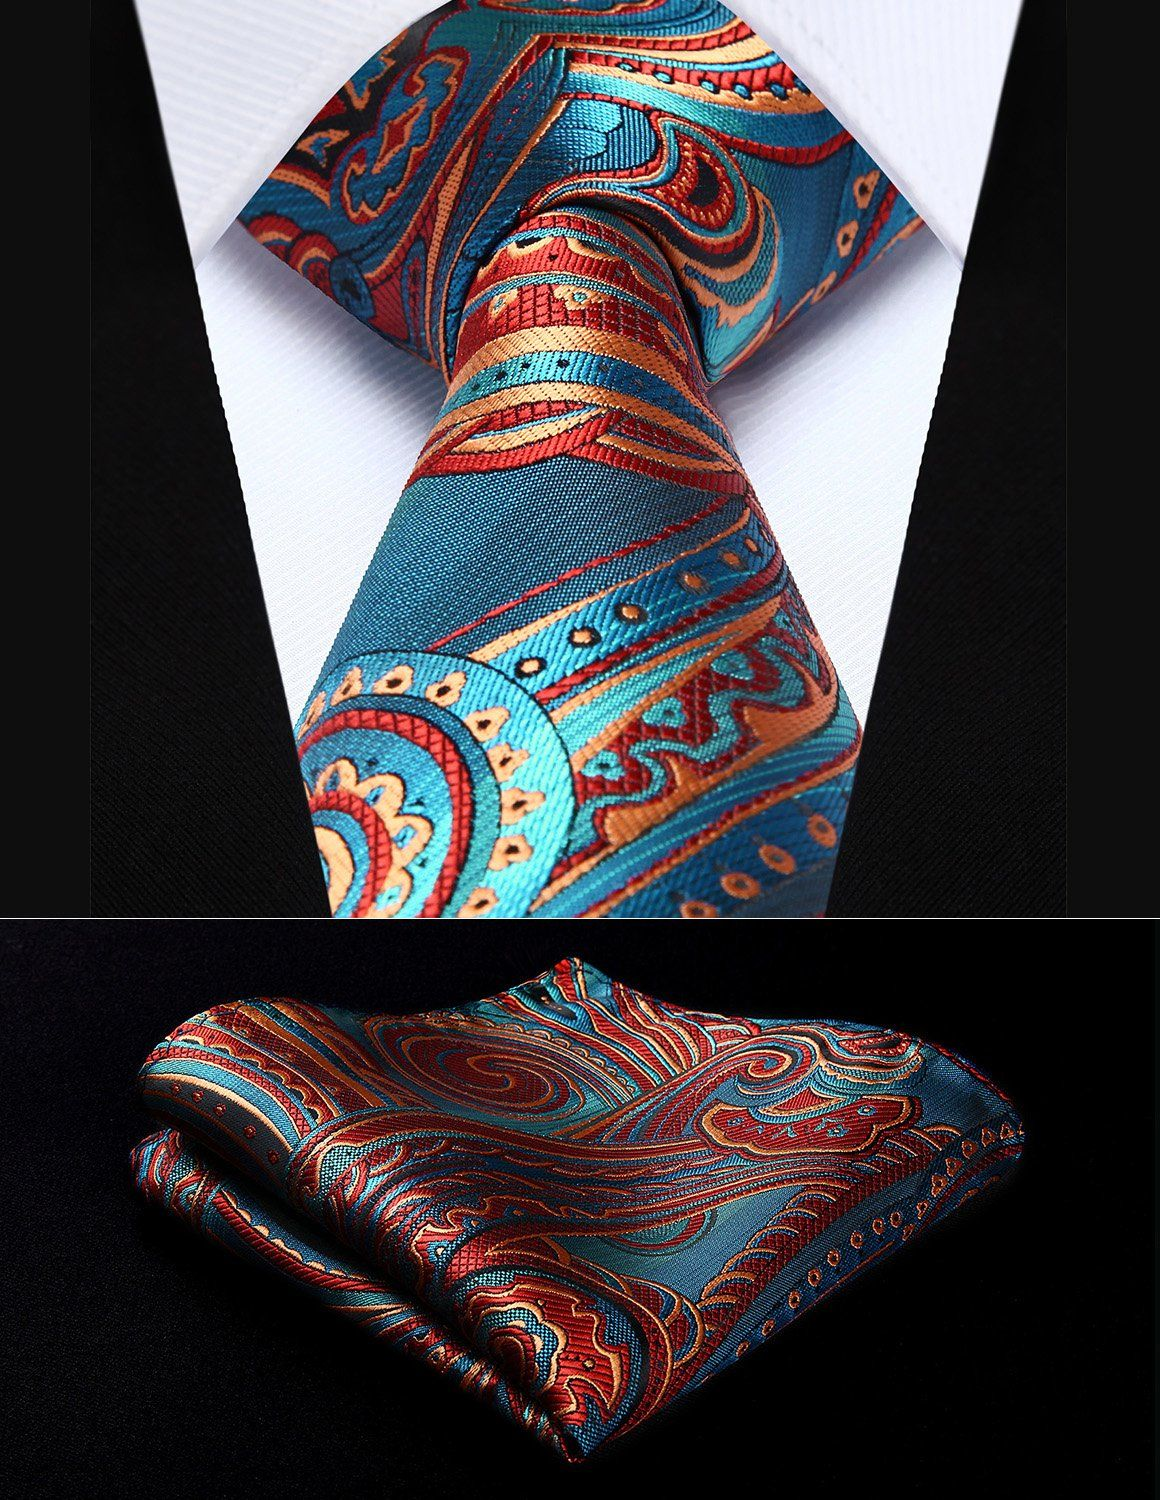 a9b5e45328239 Party Wedding Classic Pocket Square Tie TP930B8S Blue Burgundy Paisley 3.4